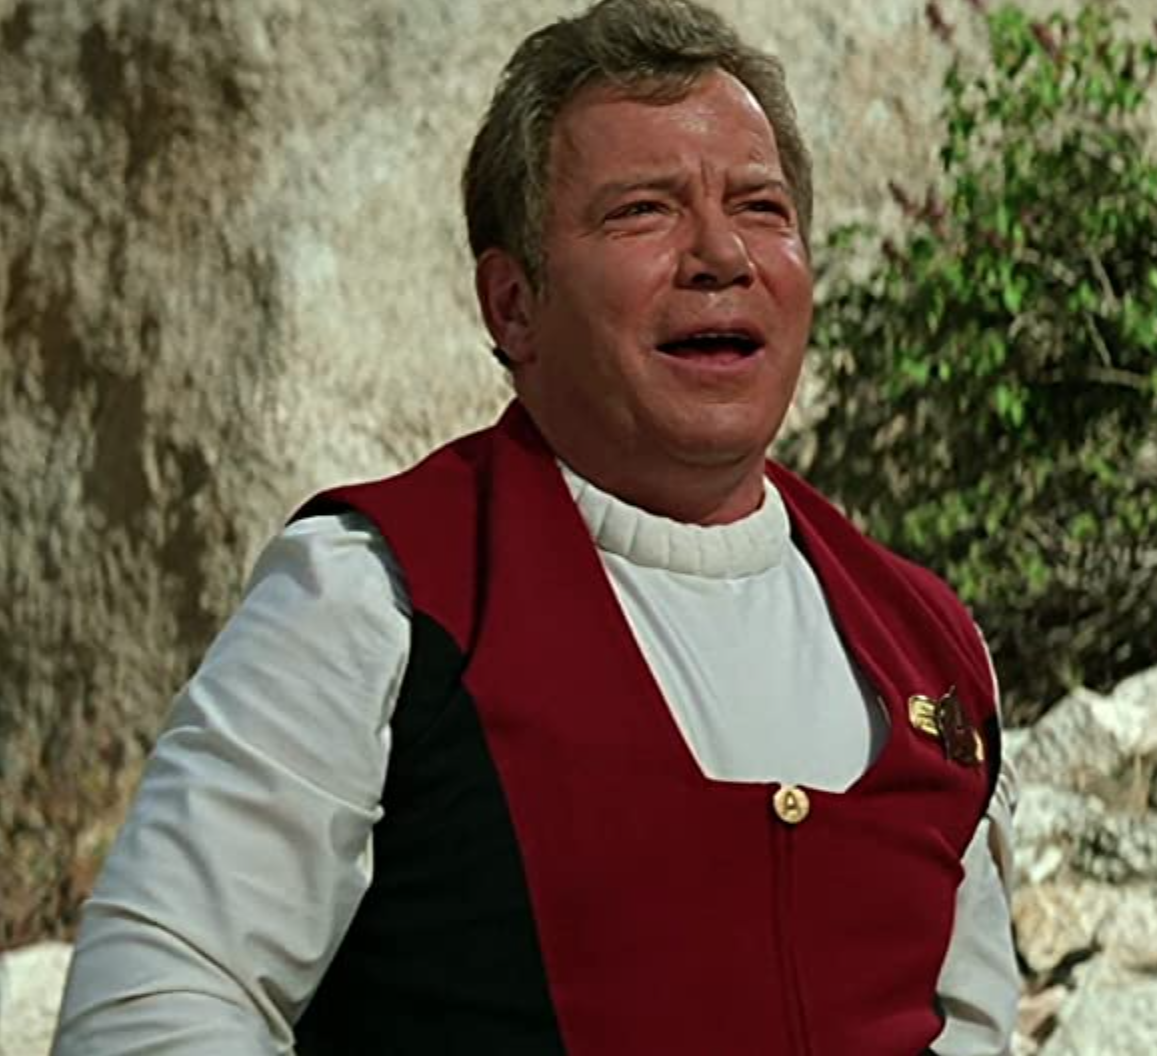 Screen Shot 2021 04 15 at 8.20.46 am e1618471284685 21 Facts You Probably Never Knew About William Shatner